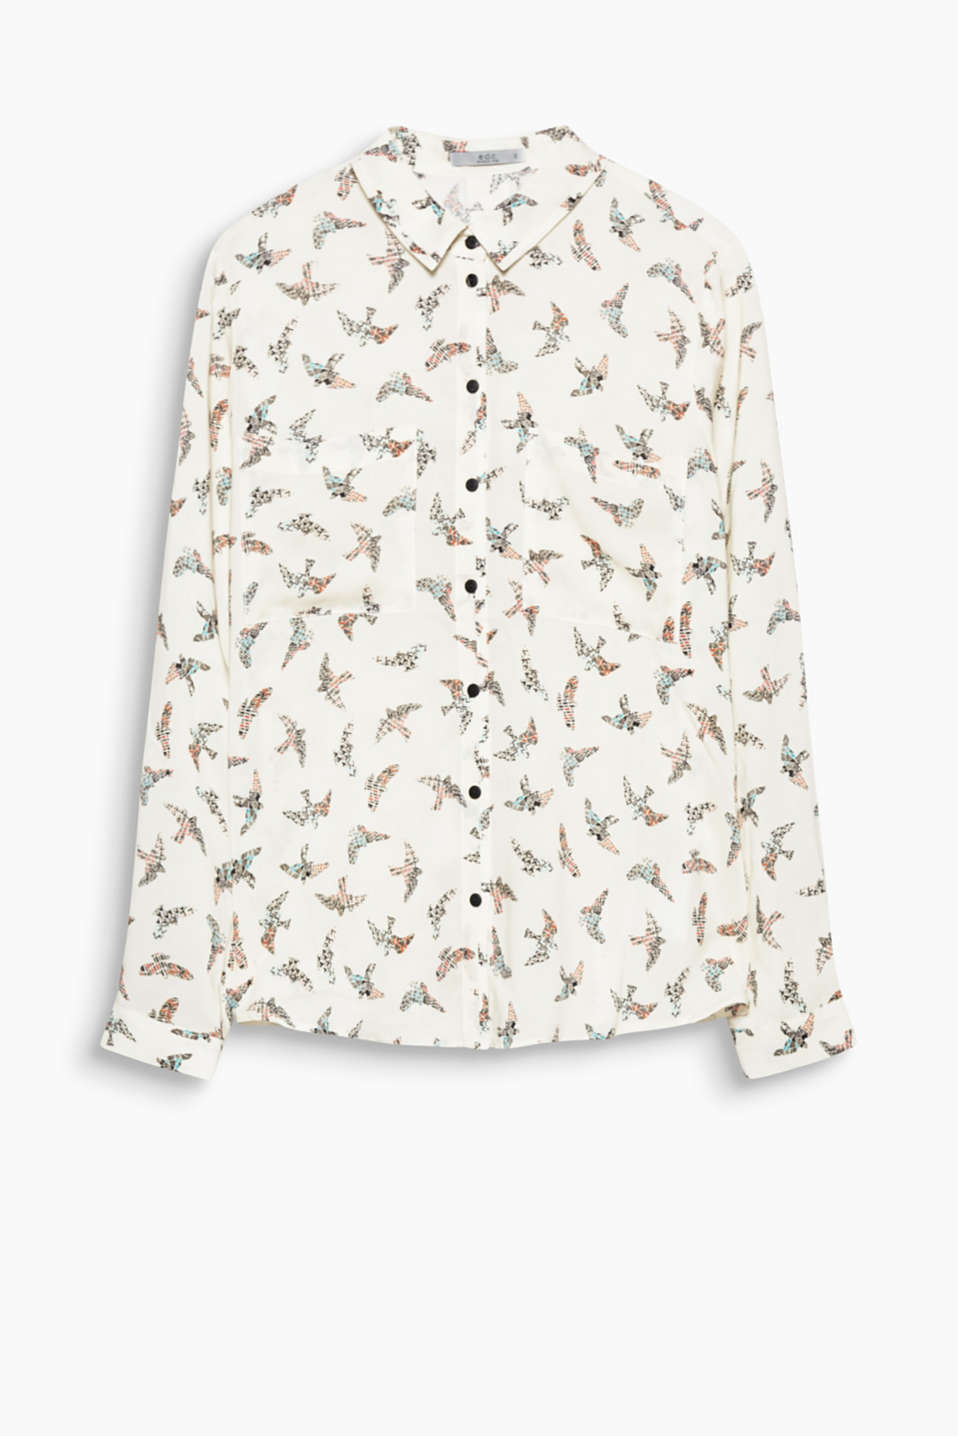 An eye-catching piece for so many looks: soft shirt blouse with a graphic bird print